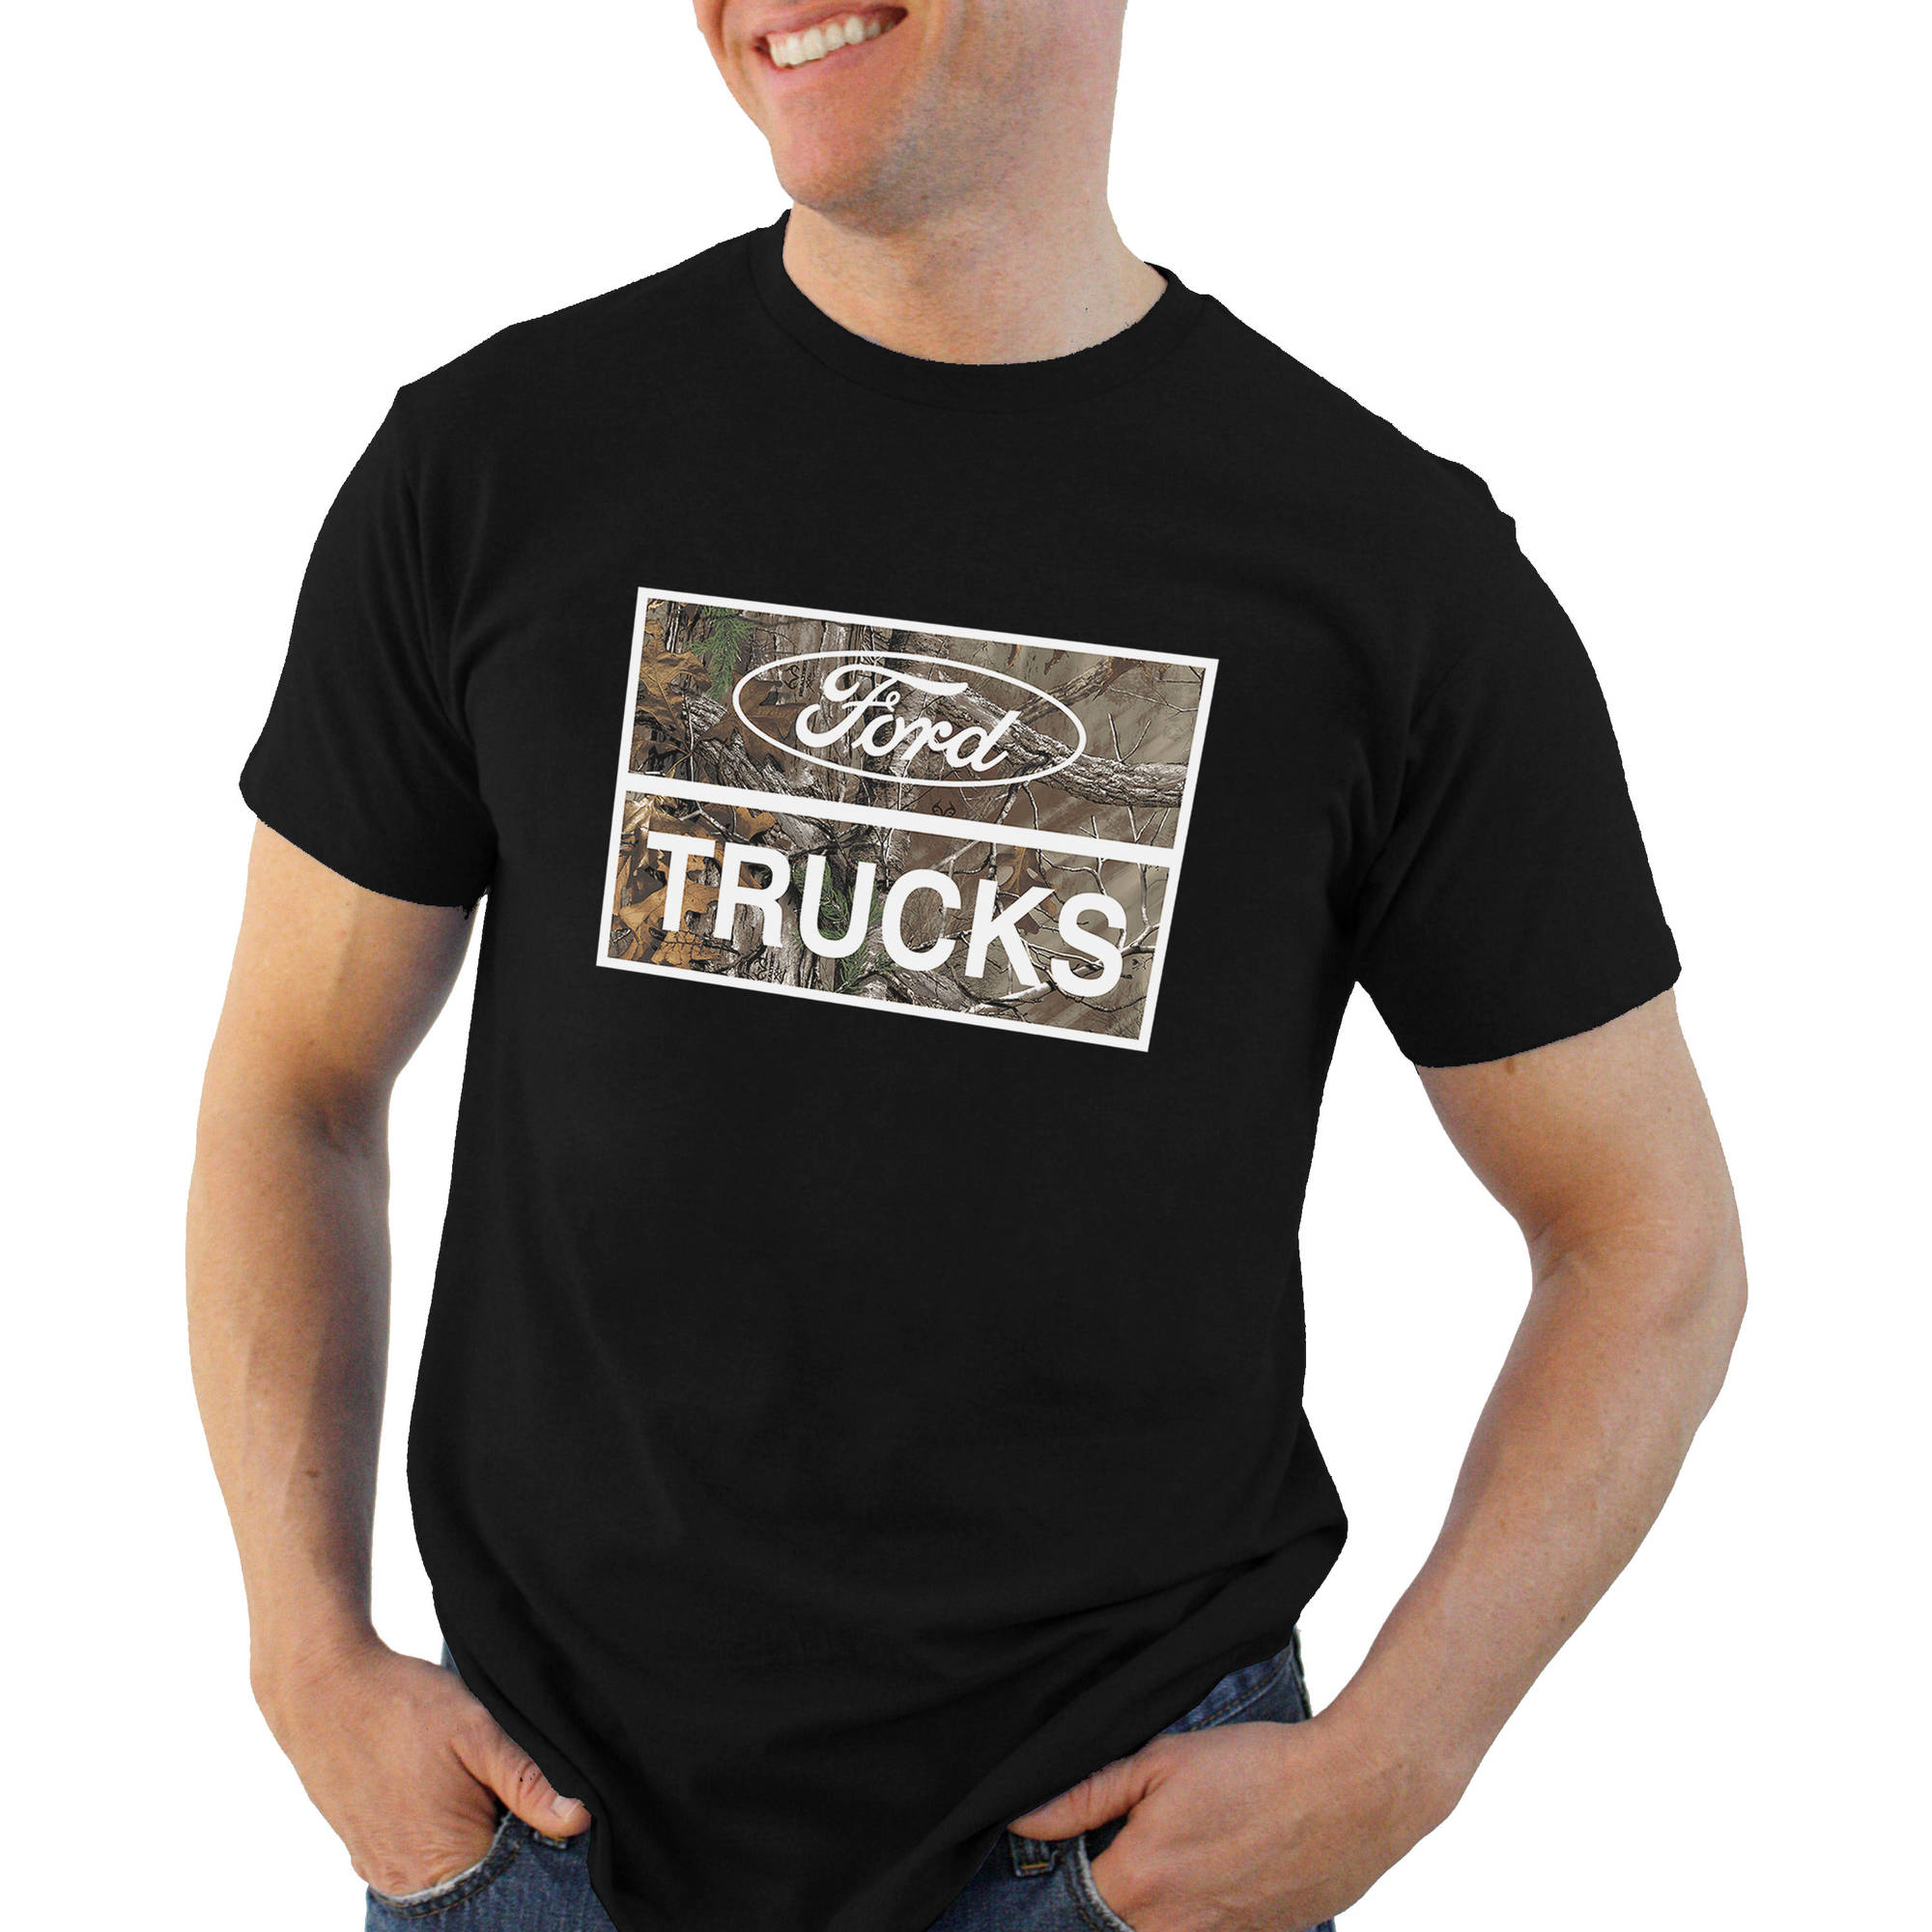 Ford out trucking Big Men's graphic tee